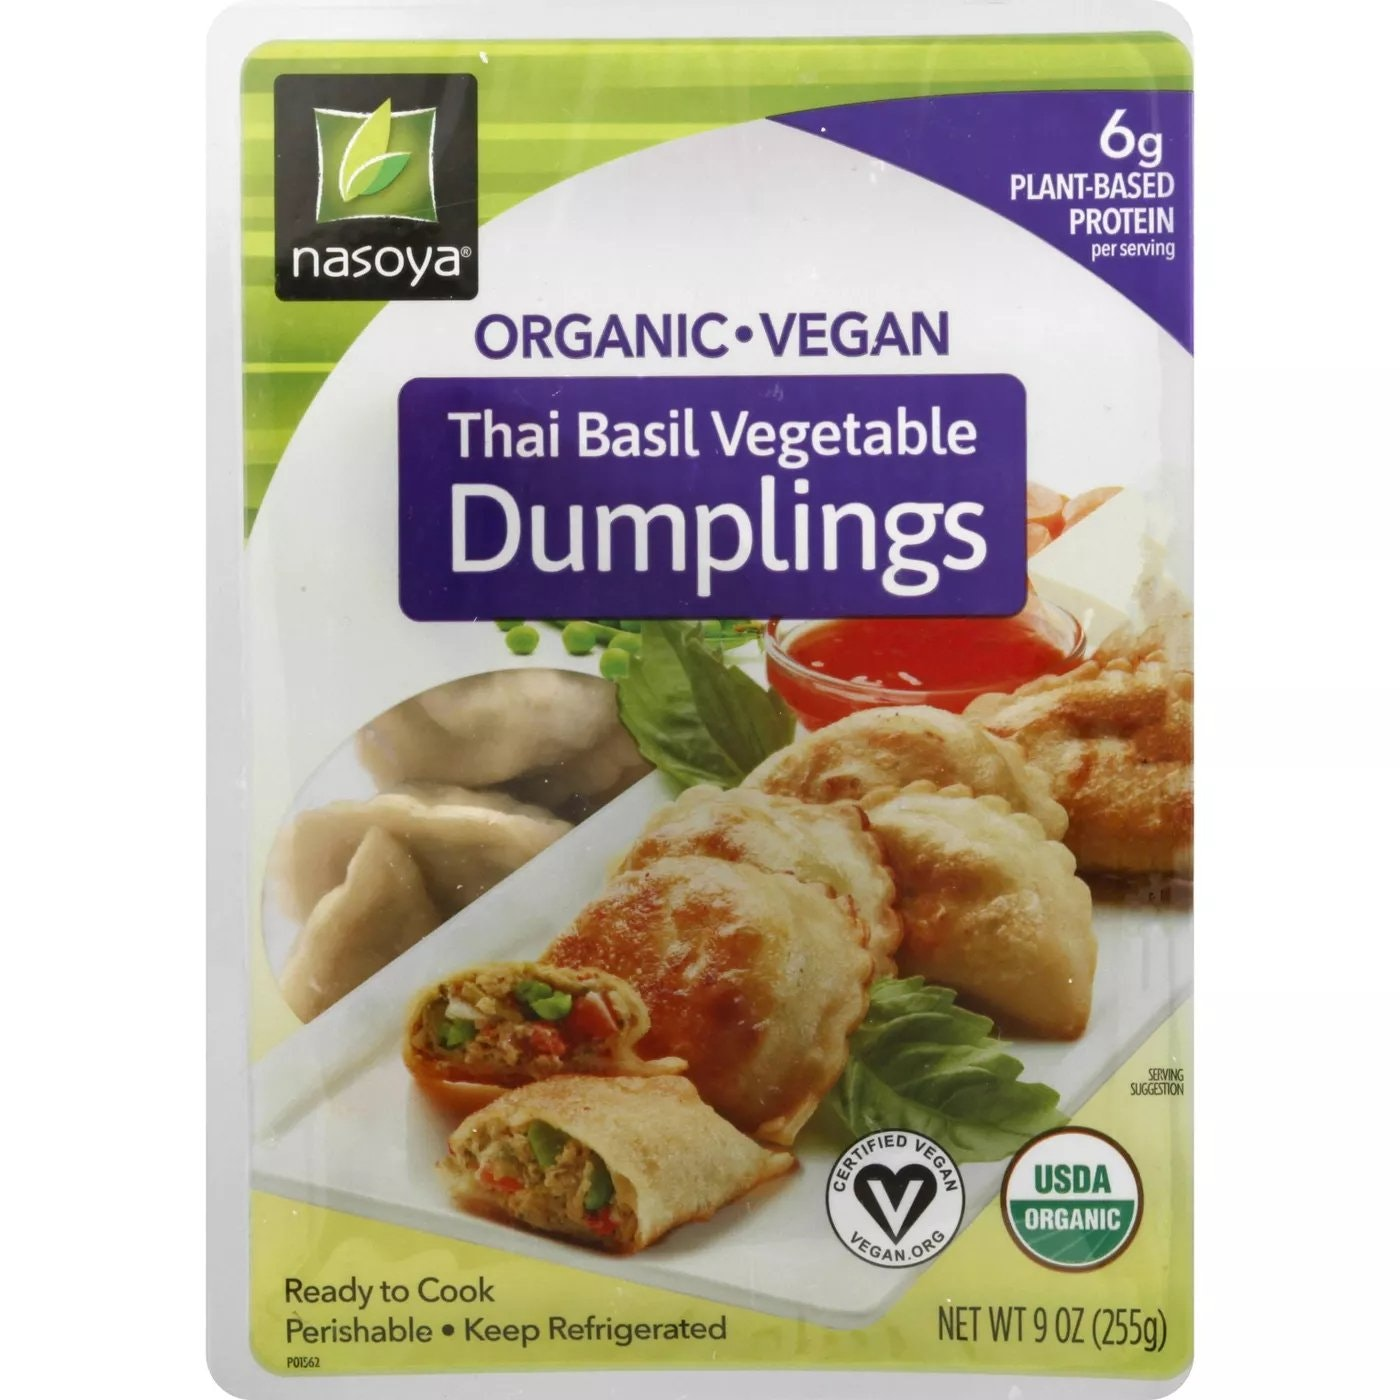 Nasoya Organic Vegan Thai Basil Vegetable Dumplings